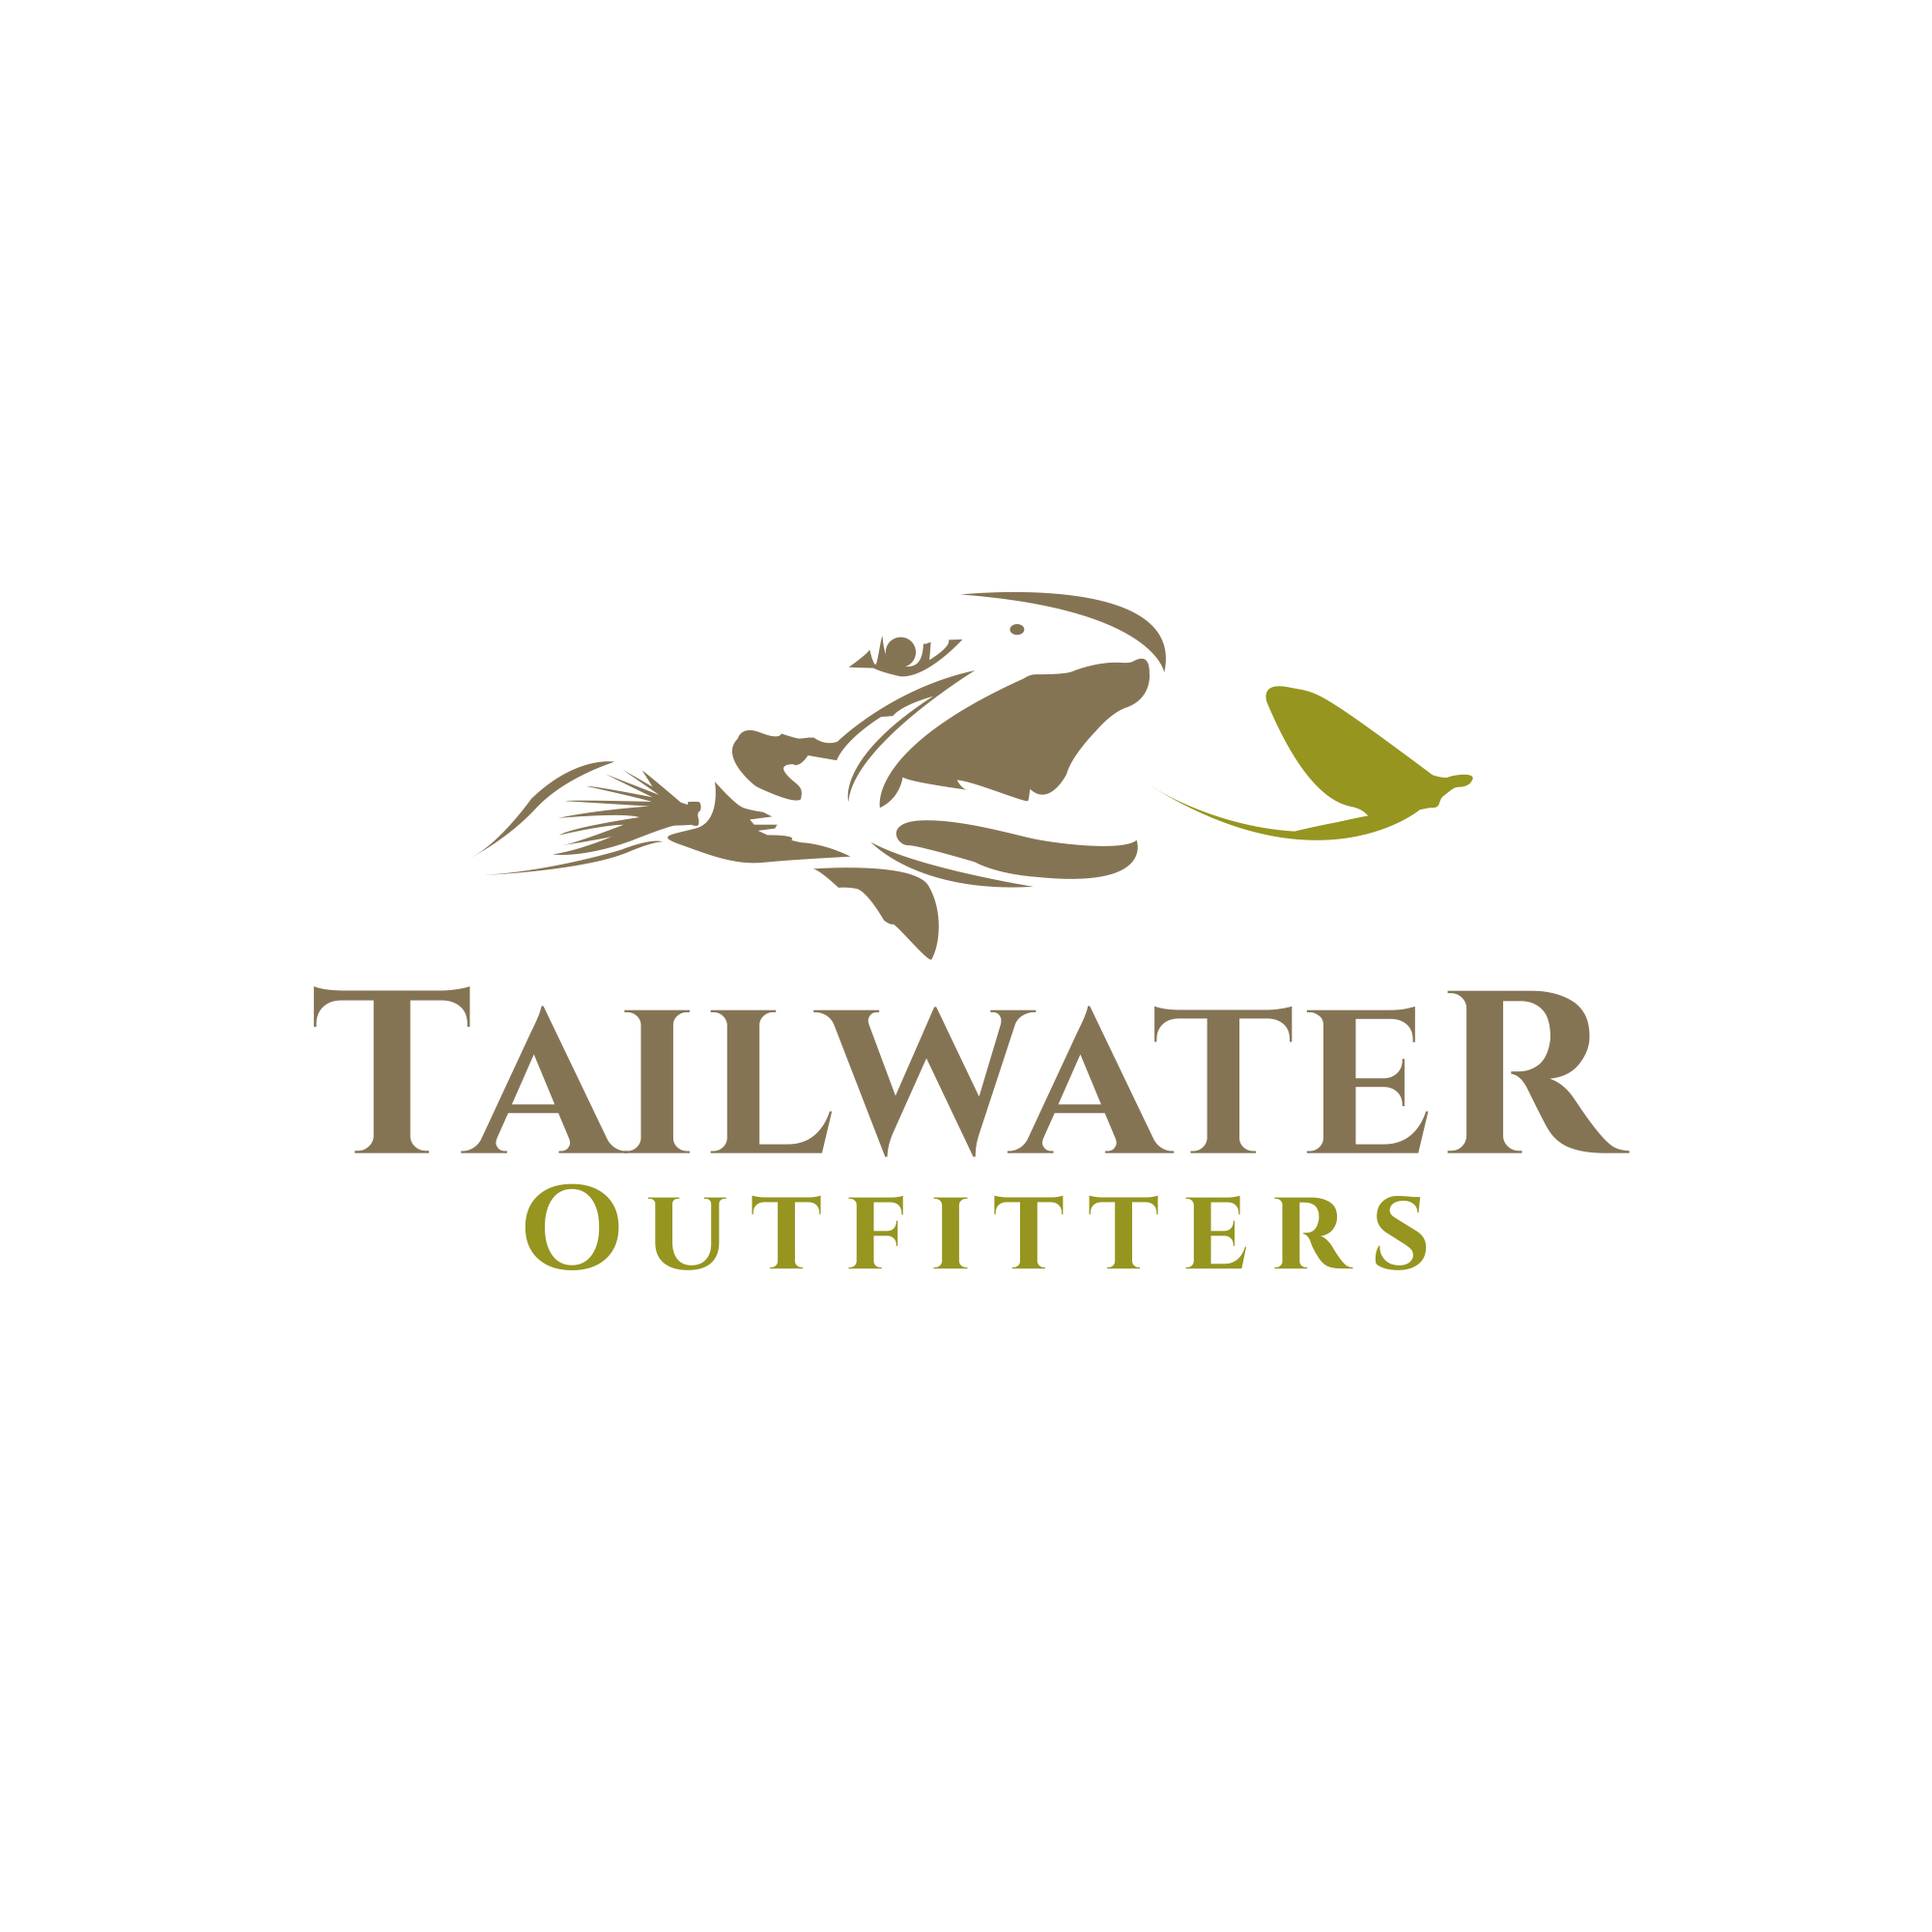 A beautiful fly fishing logo for a new flyfishing company